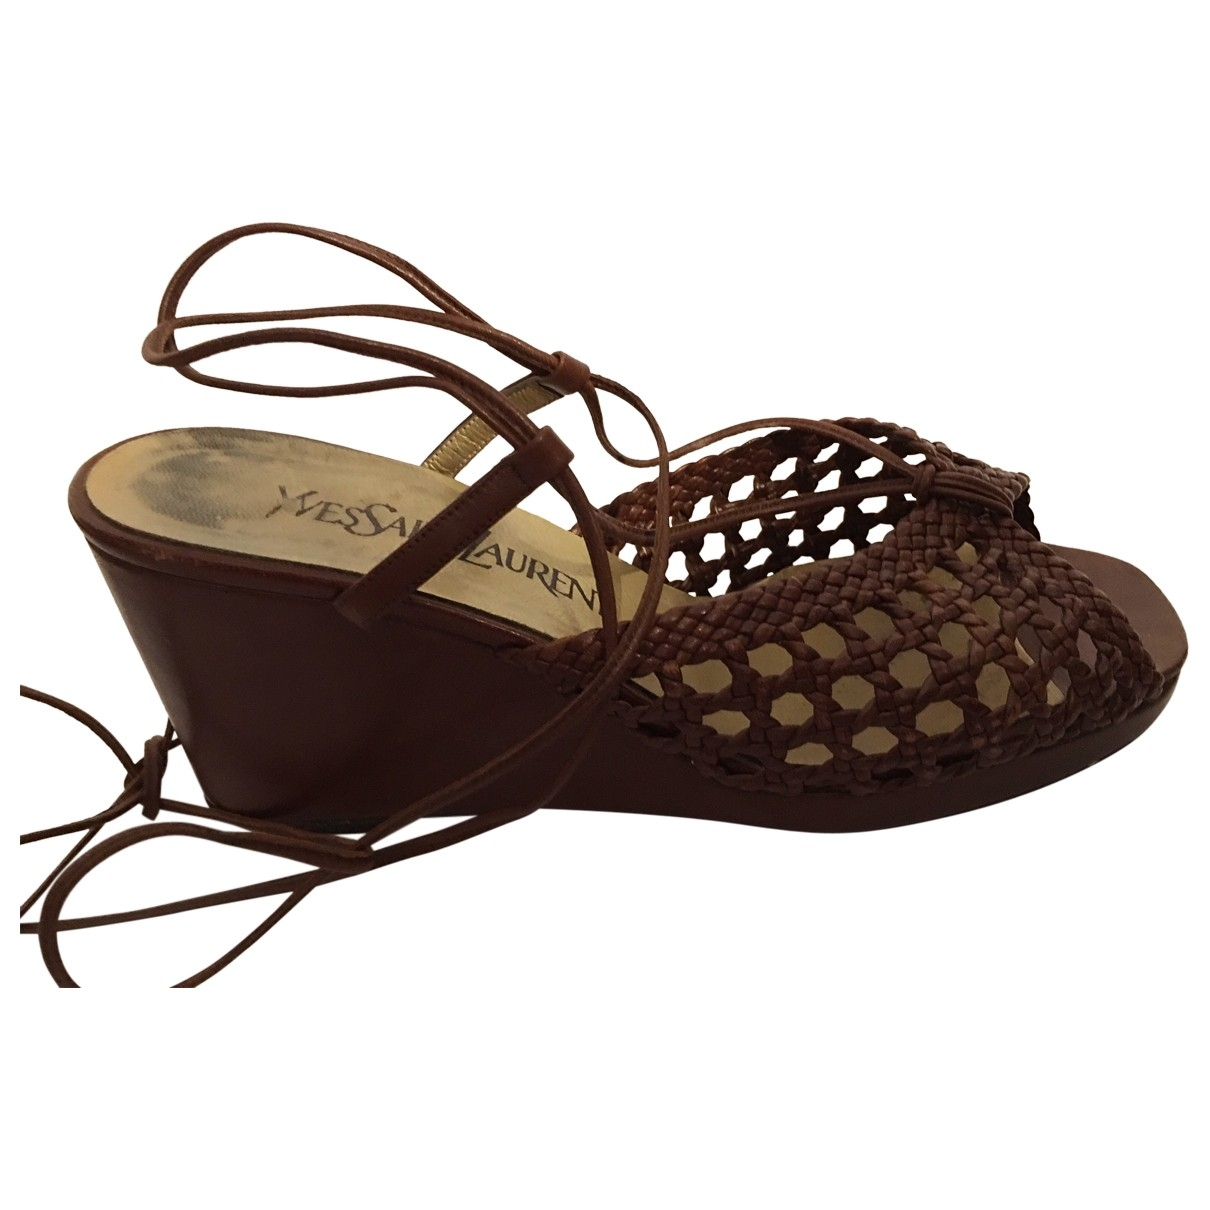 Yves Saint Laurent \N Brown Leather Sandals for Women 36.5 EU